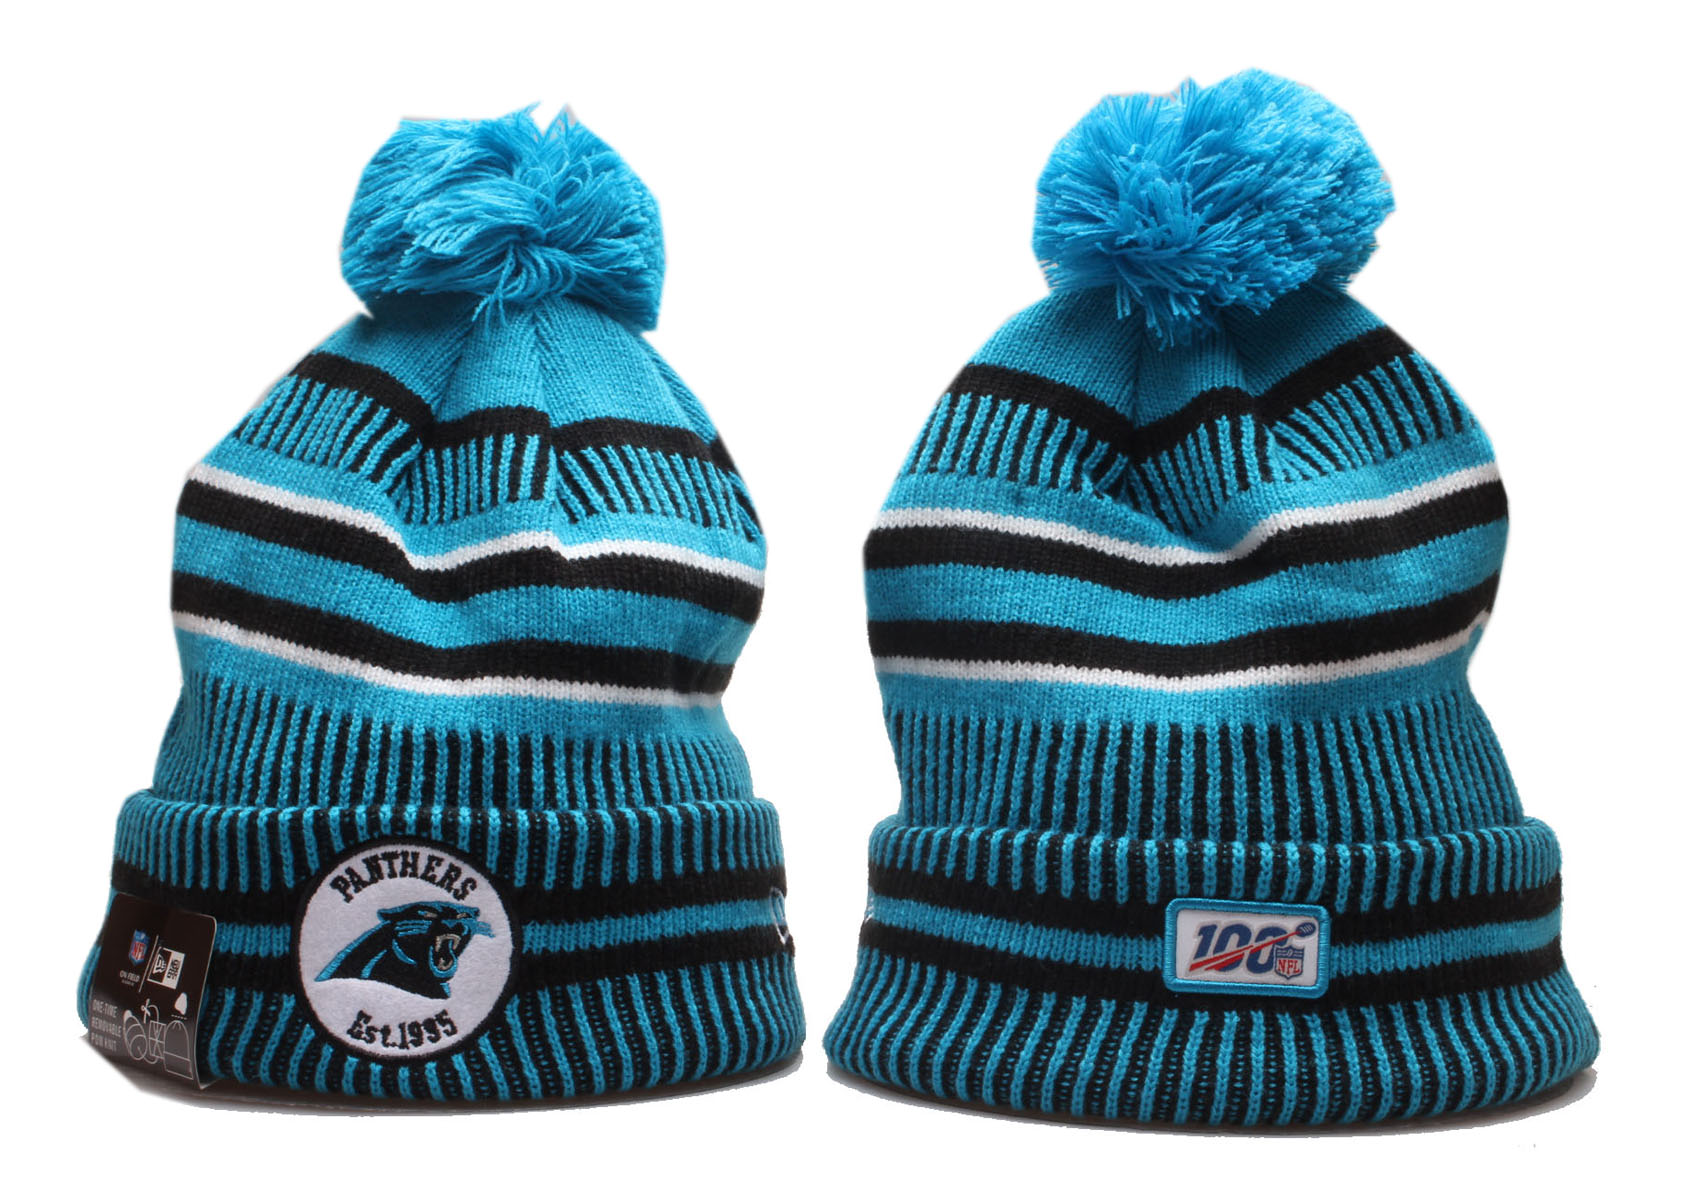 Panthers Team Logo 100th Season Cuffed Pom Knit Hat YP